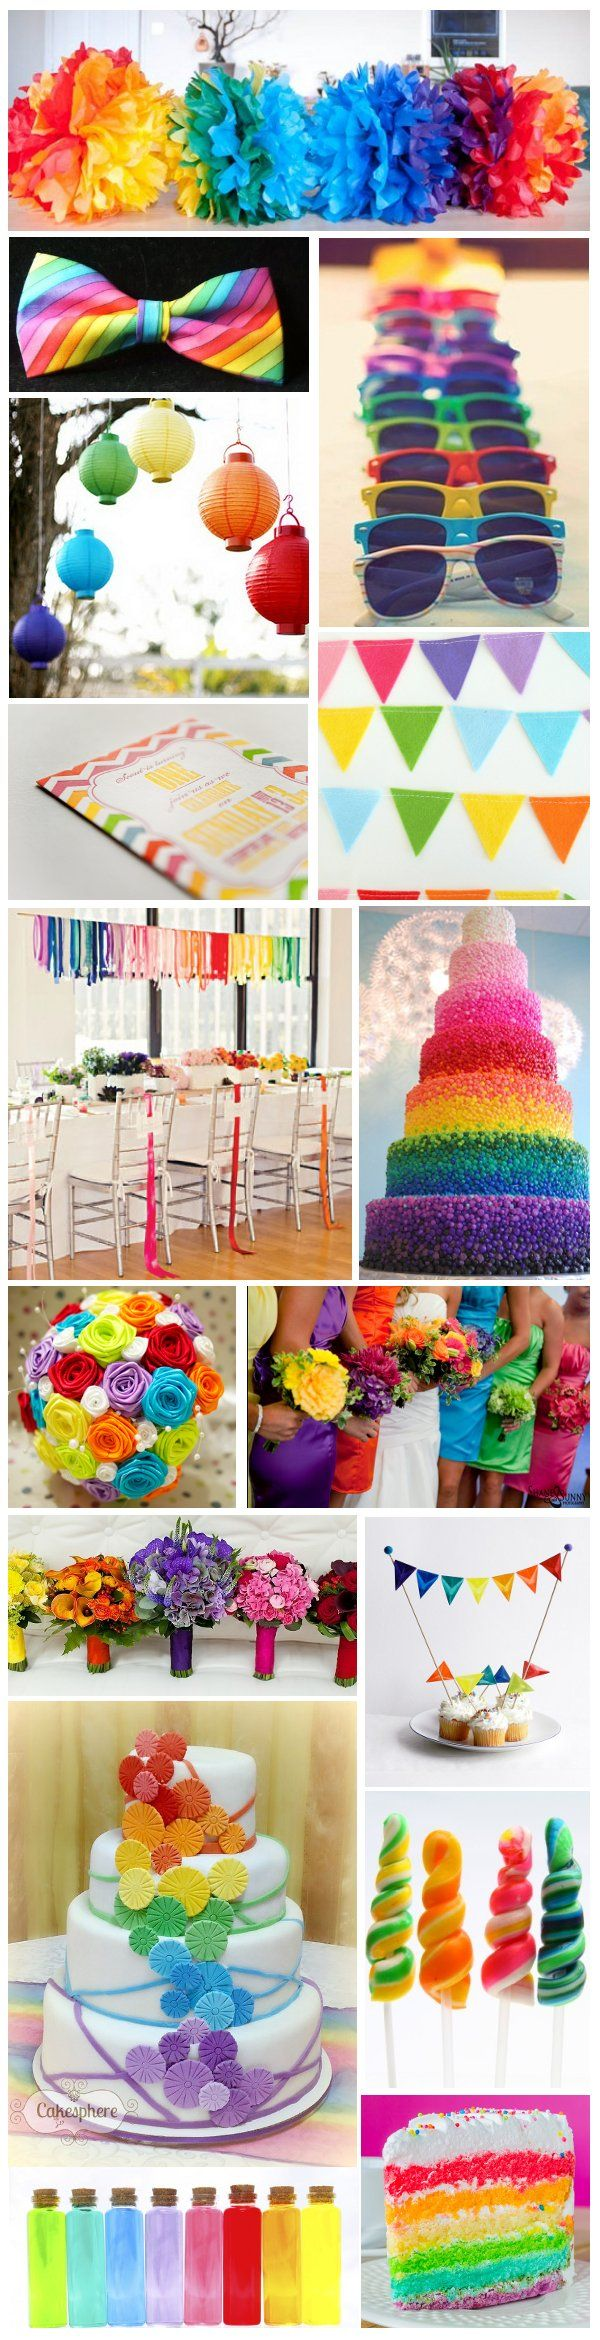 Paint a Rainbow Theme - I'm not a fan of the bouquets, or the bridesmaids, but all the rest gets my vote on how to decorate a rainbow wedding.